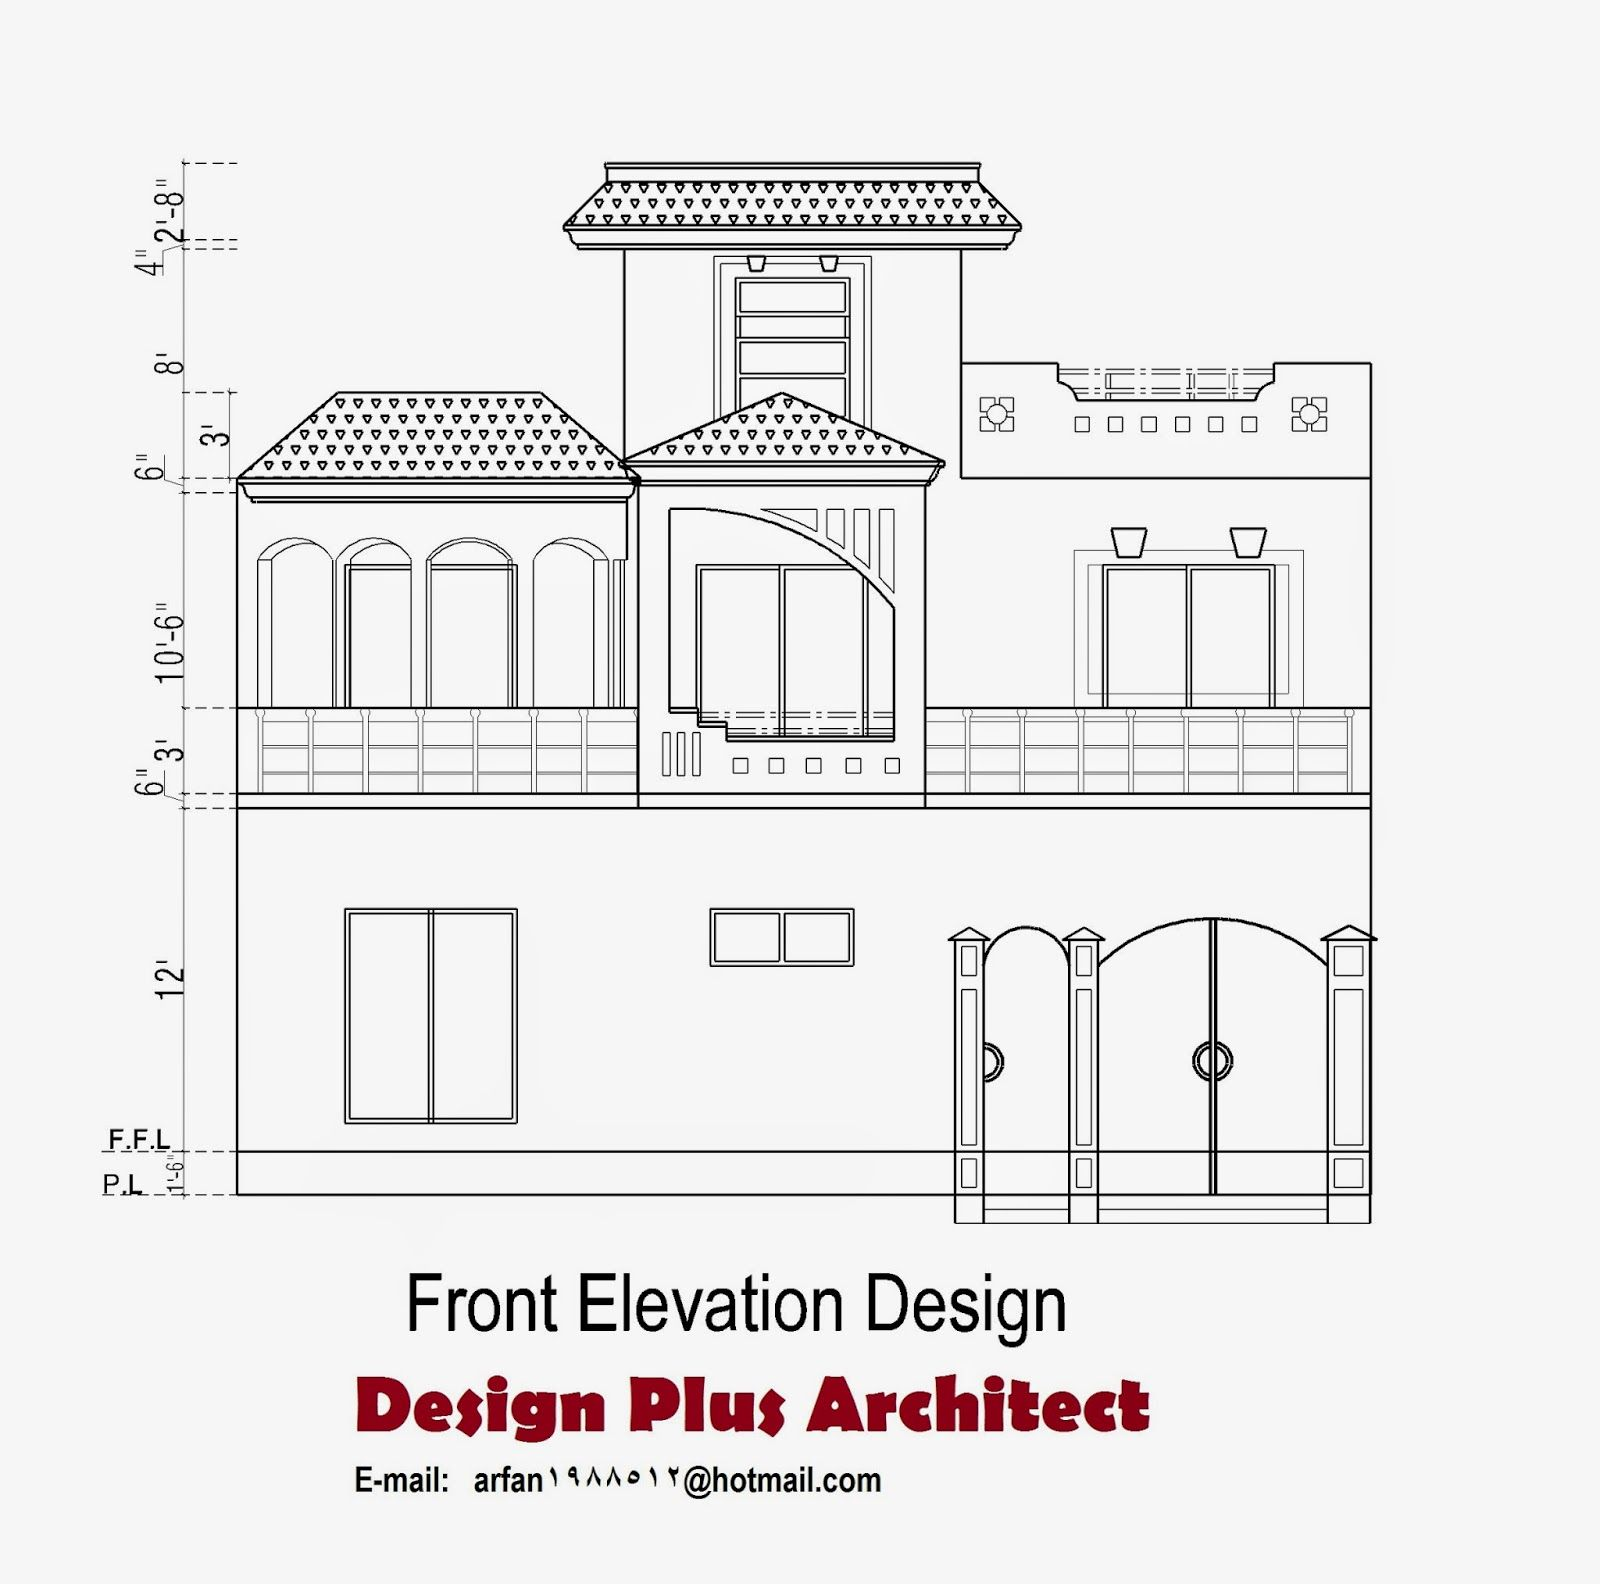 Civil Technology Architecture Design Home Plans In Pakistan Home Design Plans House Front Design House Plans